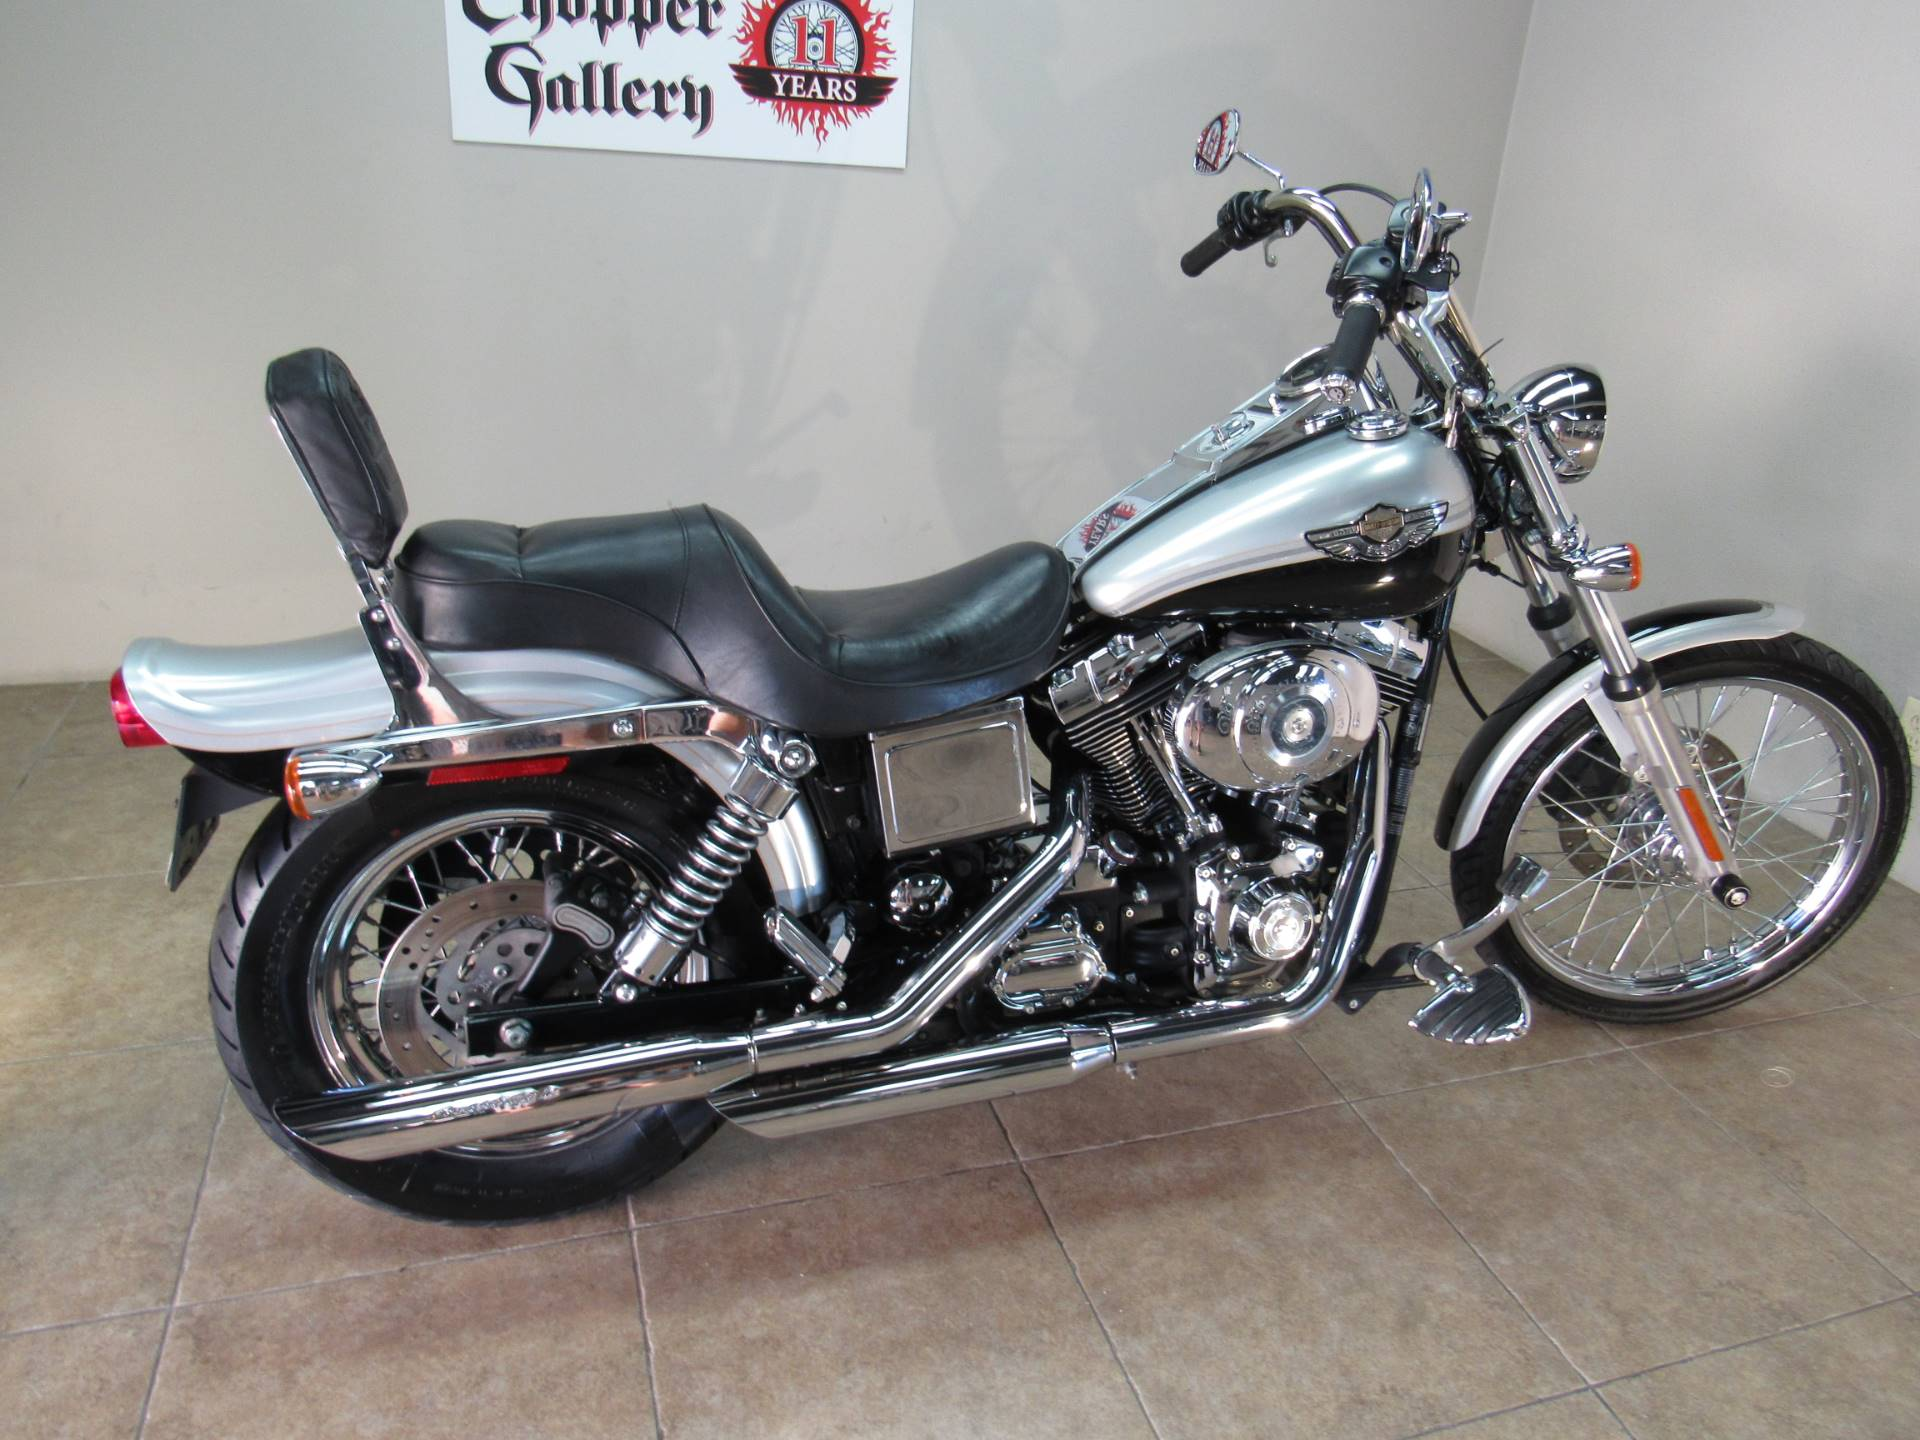 2003 Harley-Davidson FXDWG Dyna Wide Glide® in Temecula, California - Photo 3